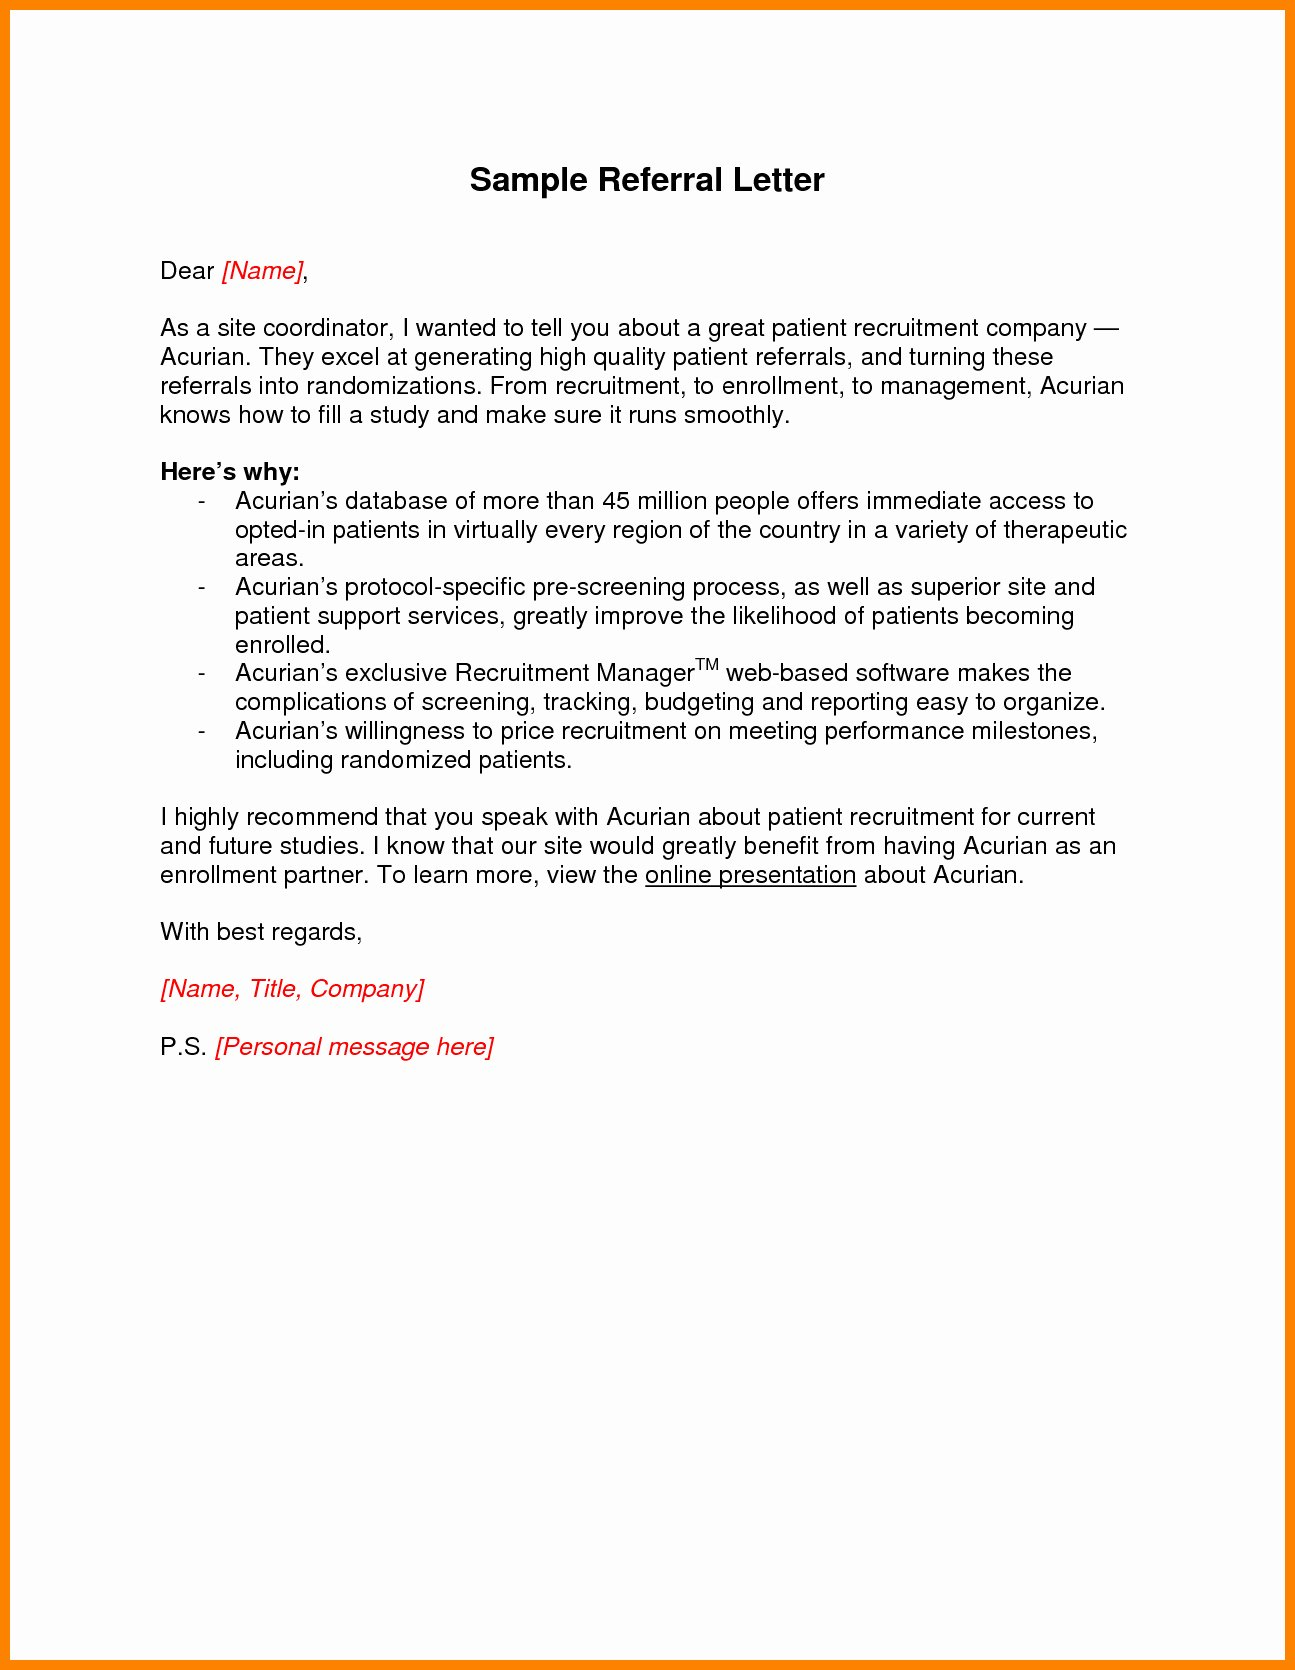 Medical Referral Letter Template New Medical Referral Letter Template Examples